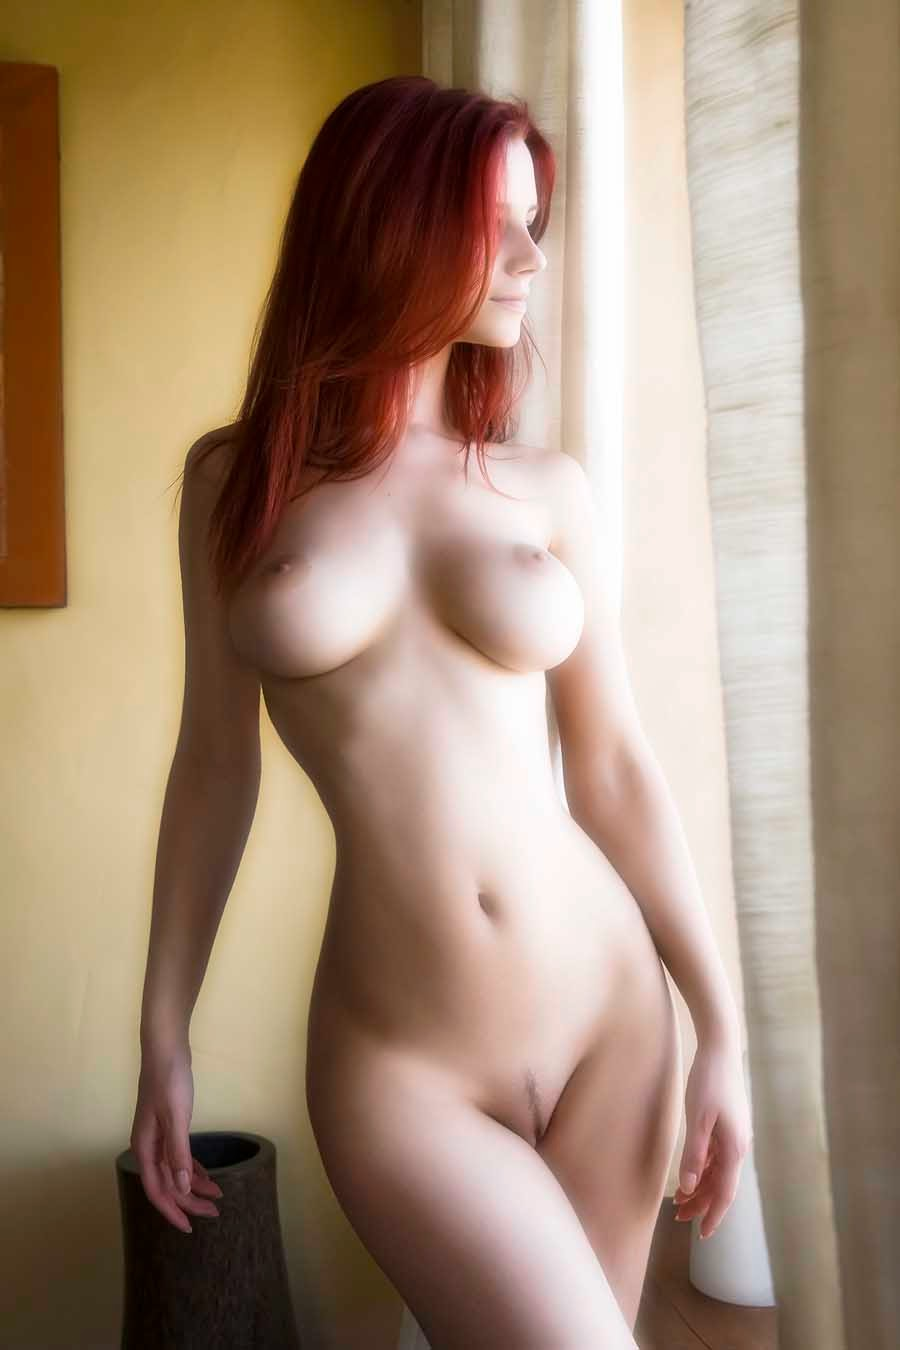 redhead of the week